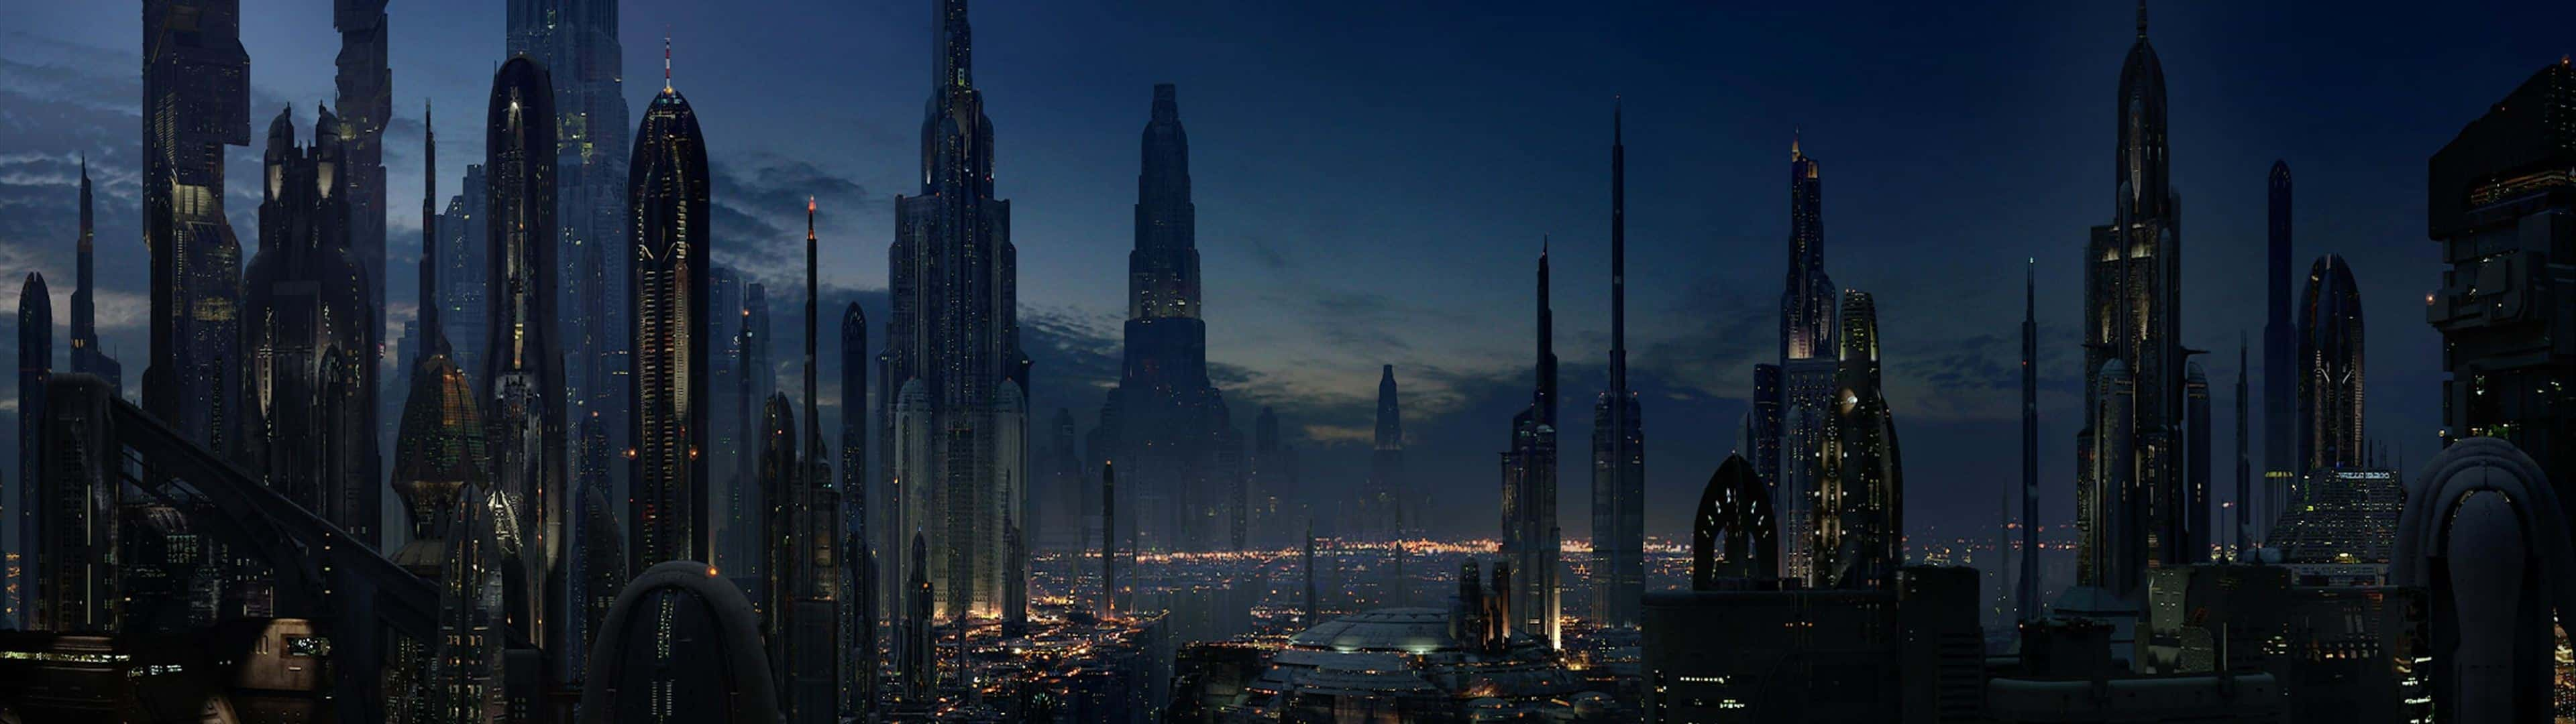 Star Wars Coruscant Dual Monitor Wallpaper Pixelz